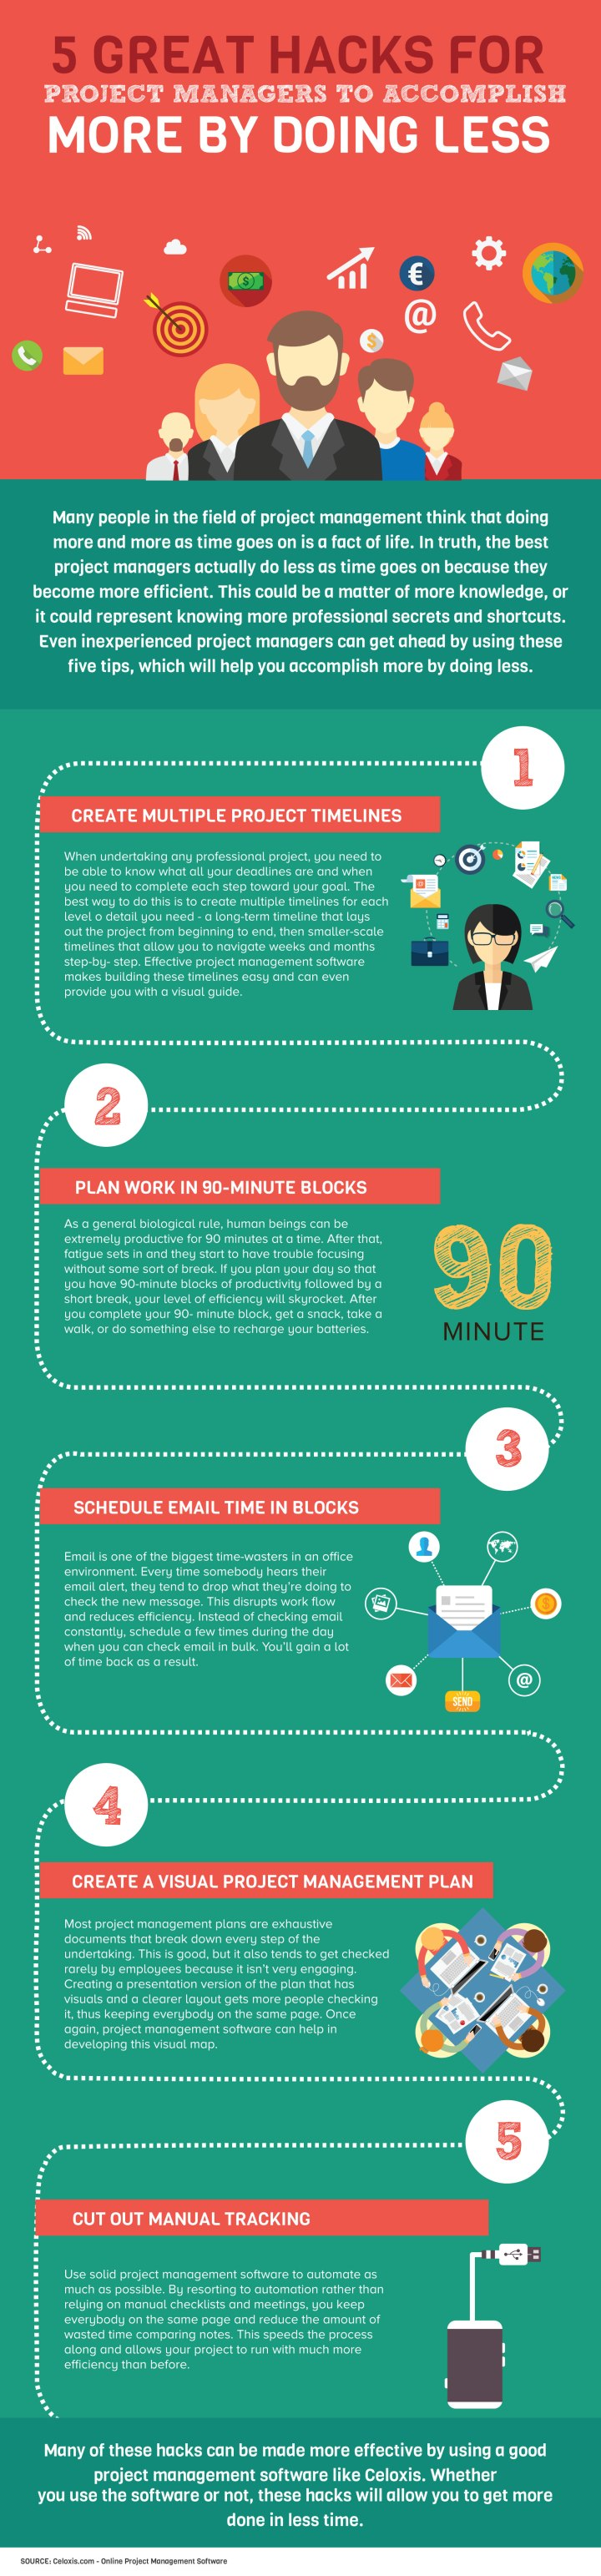 INFOGRAPHIC: 5 Hacks for Project Managers to Accomplish More by Doing Less